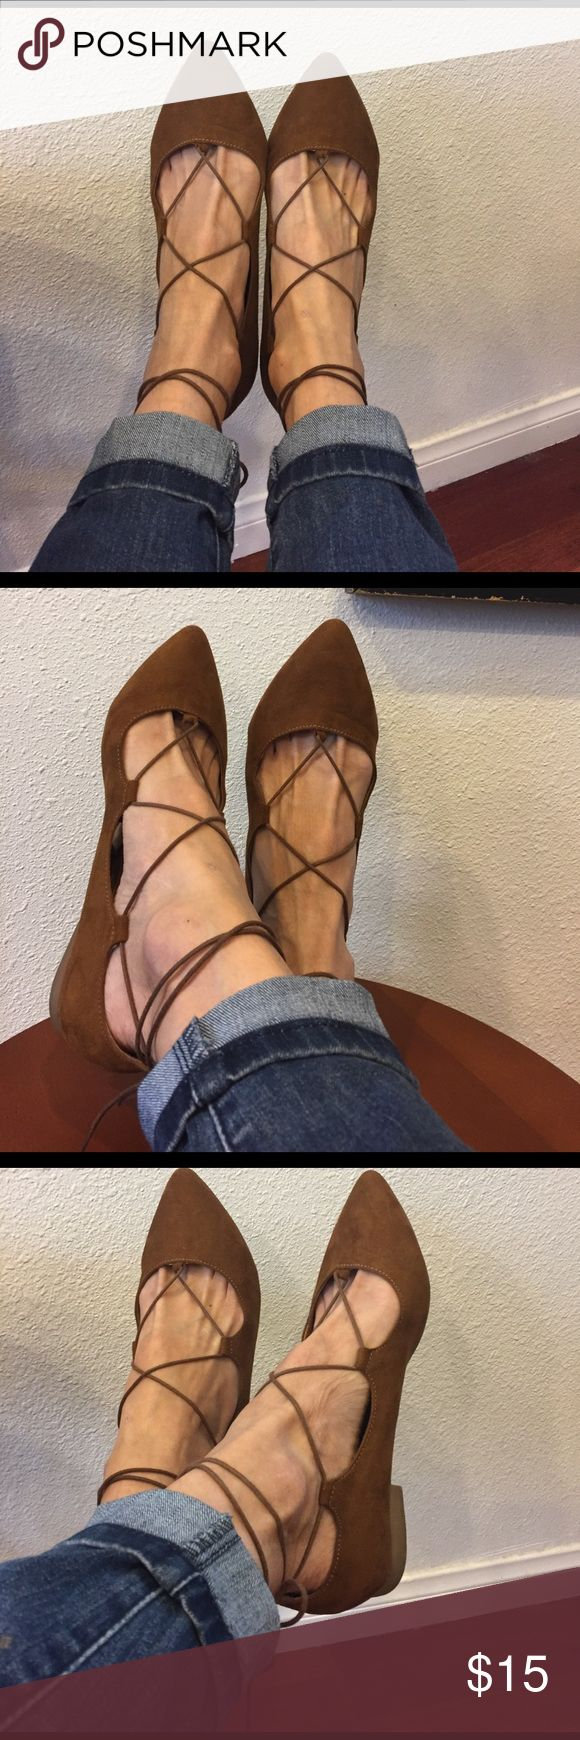 Massimo brown flats 8 Sued brown tie ankle flats. In great conditions size 8. Great with jeans or dress. Mossimo Supply Co Shoes Flats & Loafers